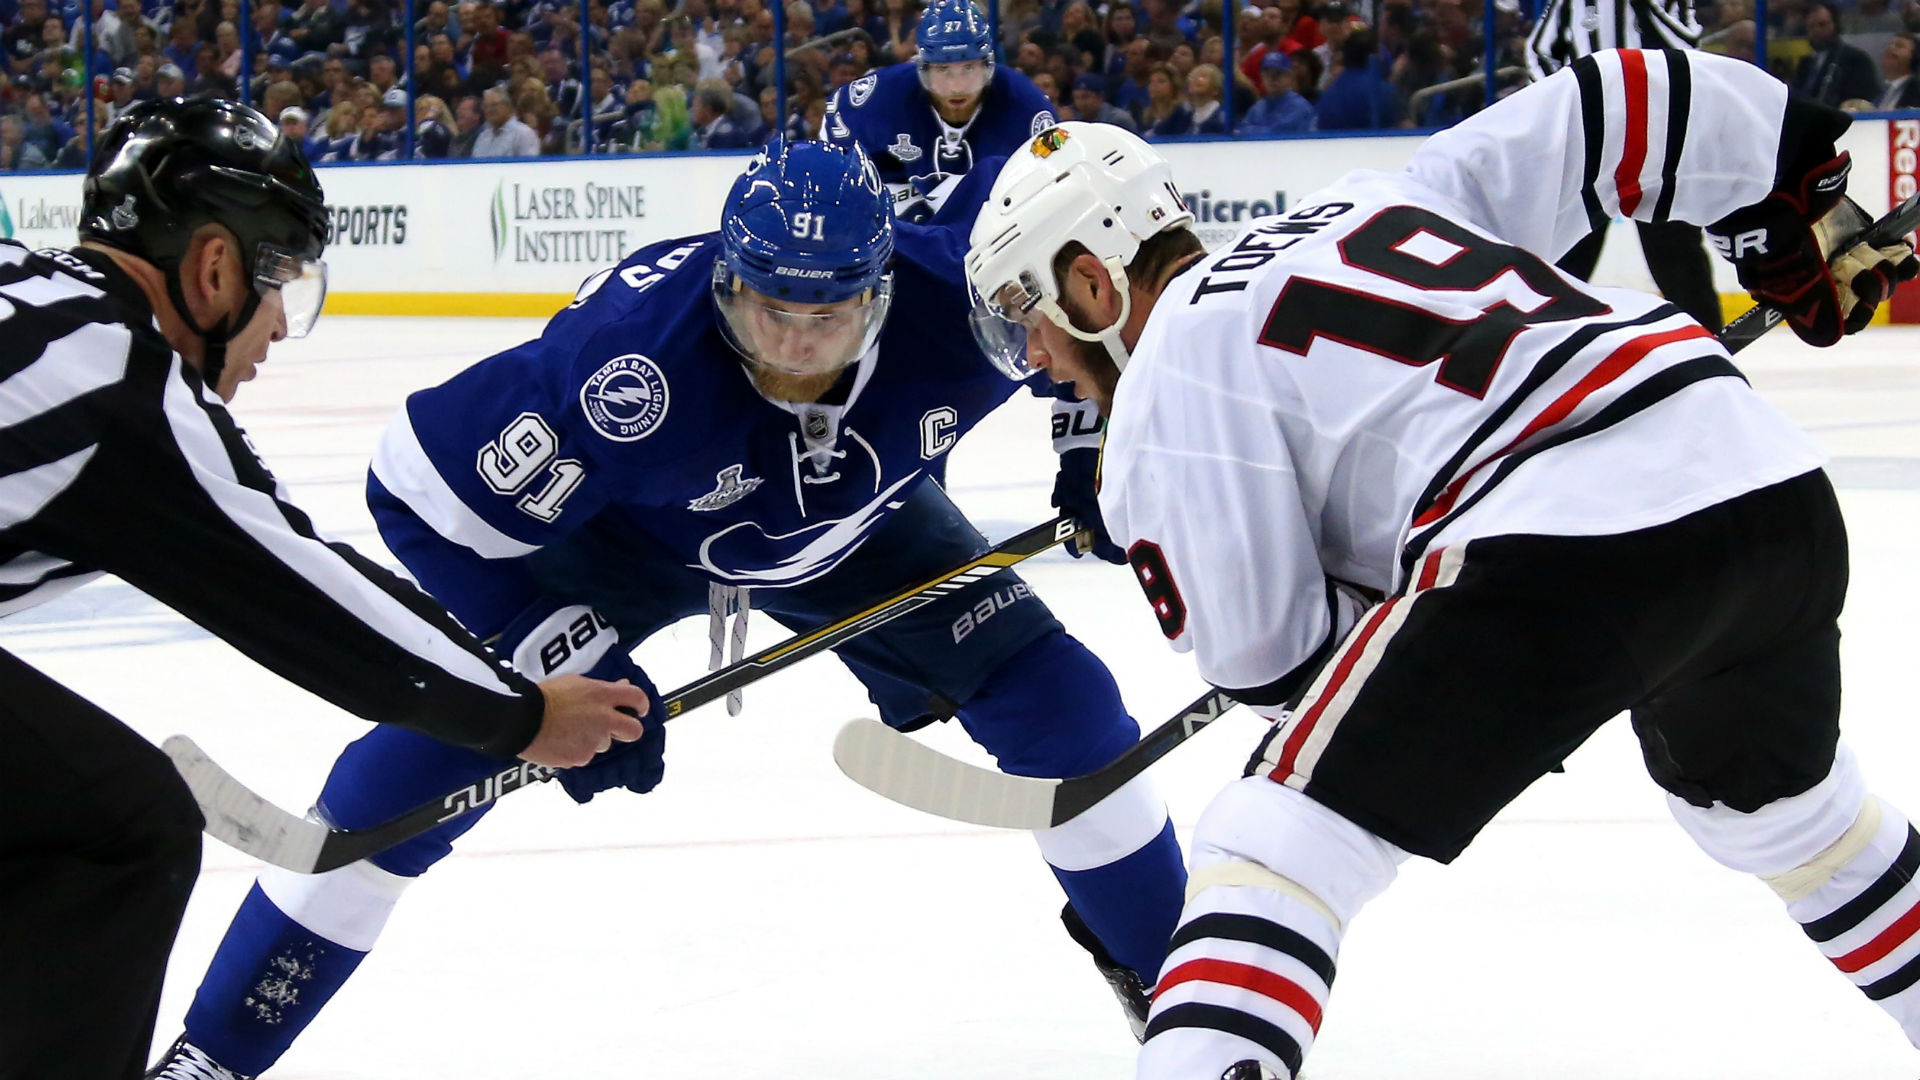 stamkos-toews-060415-getty-ftr-us.jpg